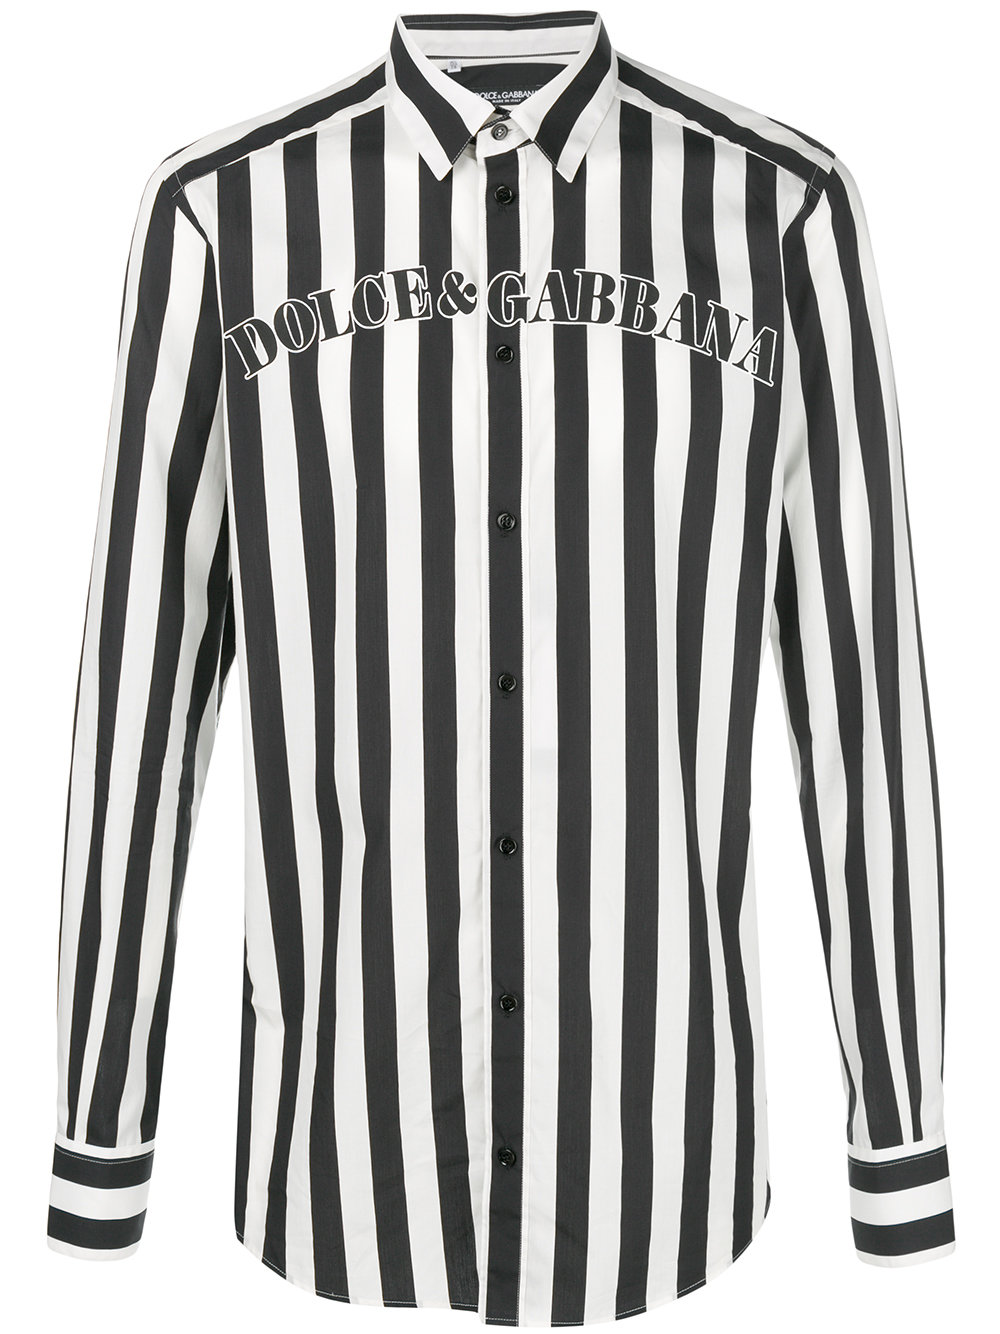 DOLCE & GABBANA striped logo shirt